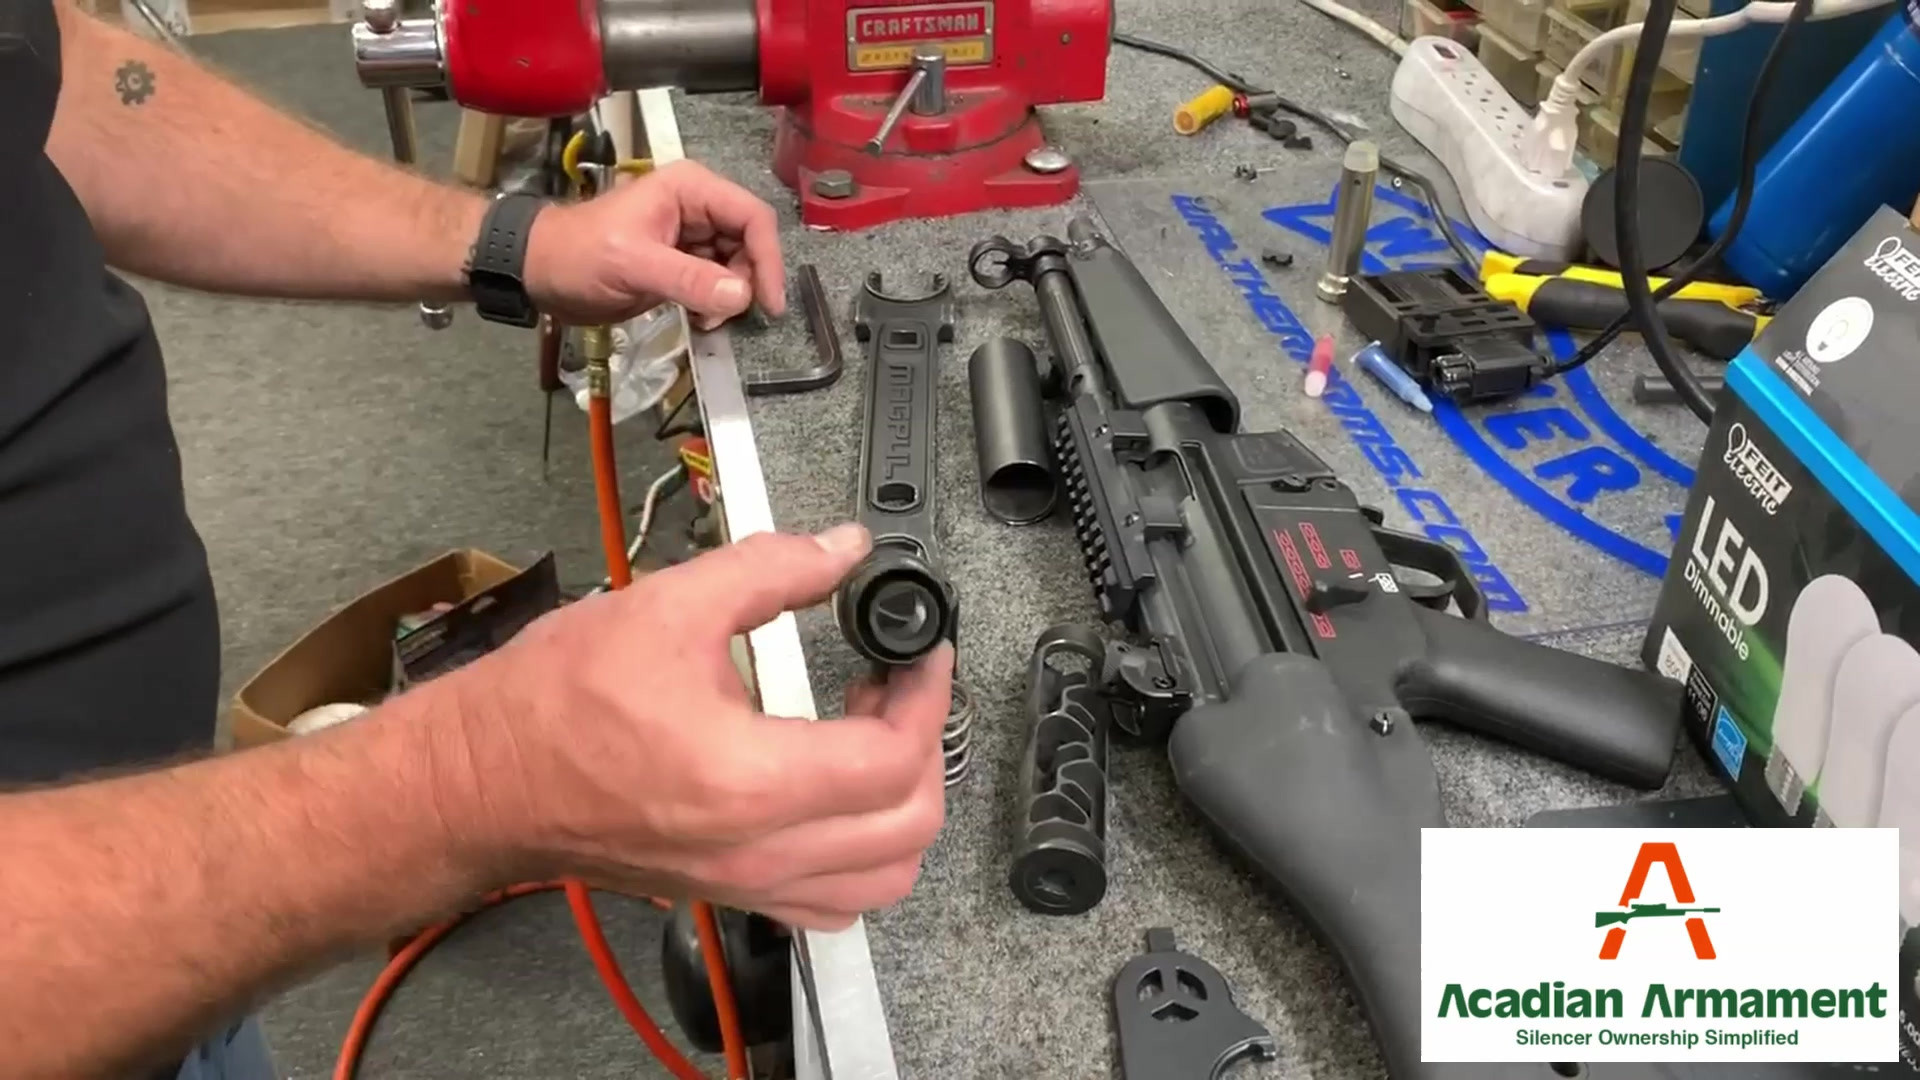 Disassembling the D9 - First impression from Dave's Gunshop